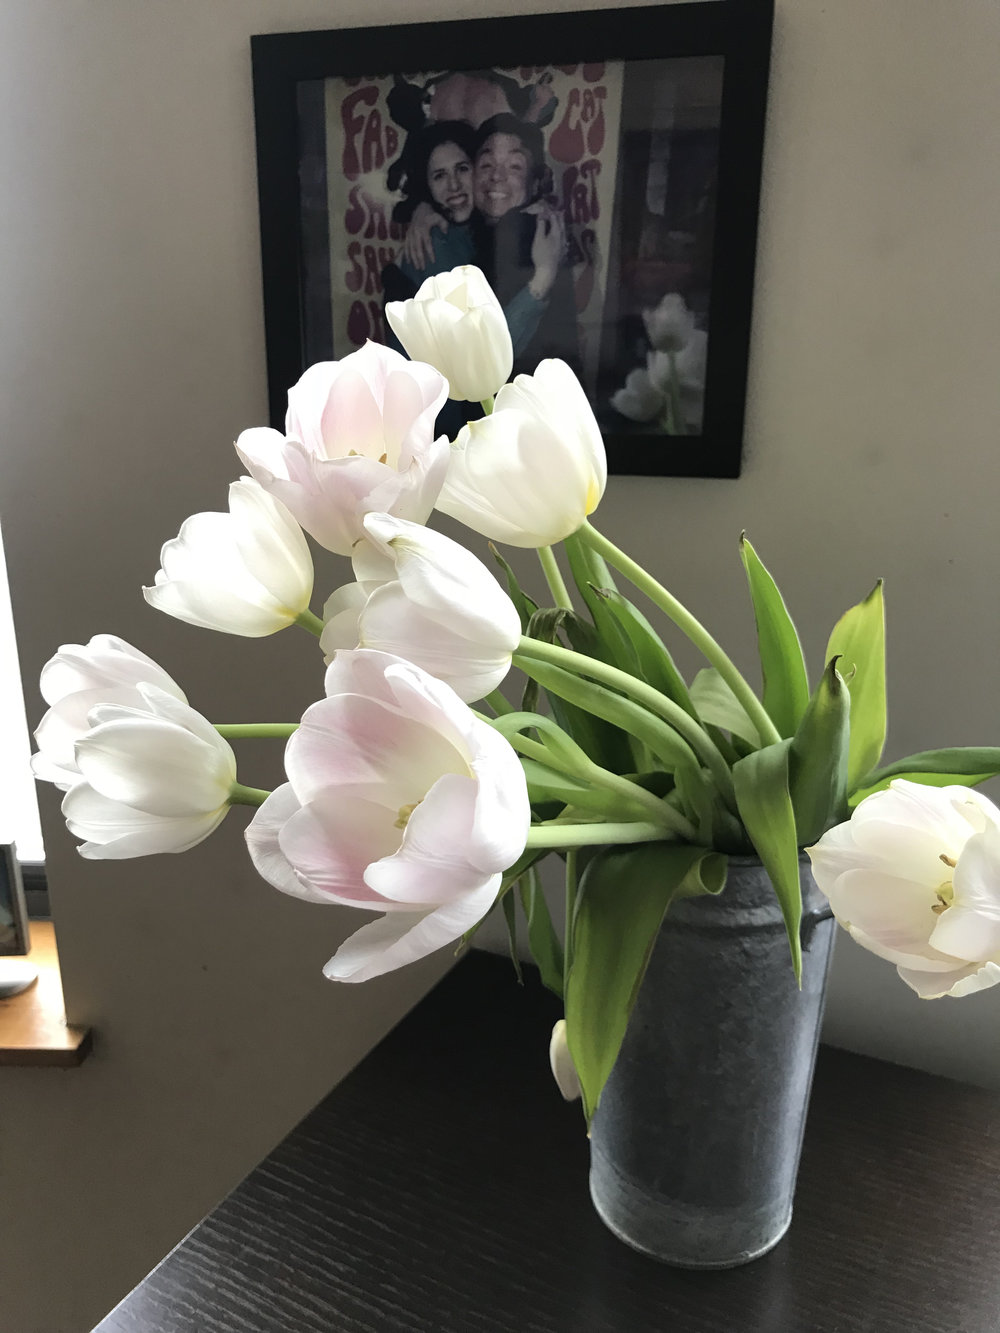 The healing power of the flowers I bought myself for the self-care challenge. Ahhh.